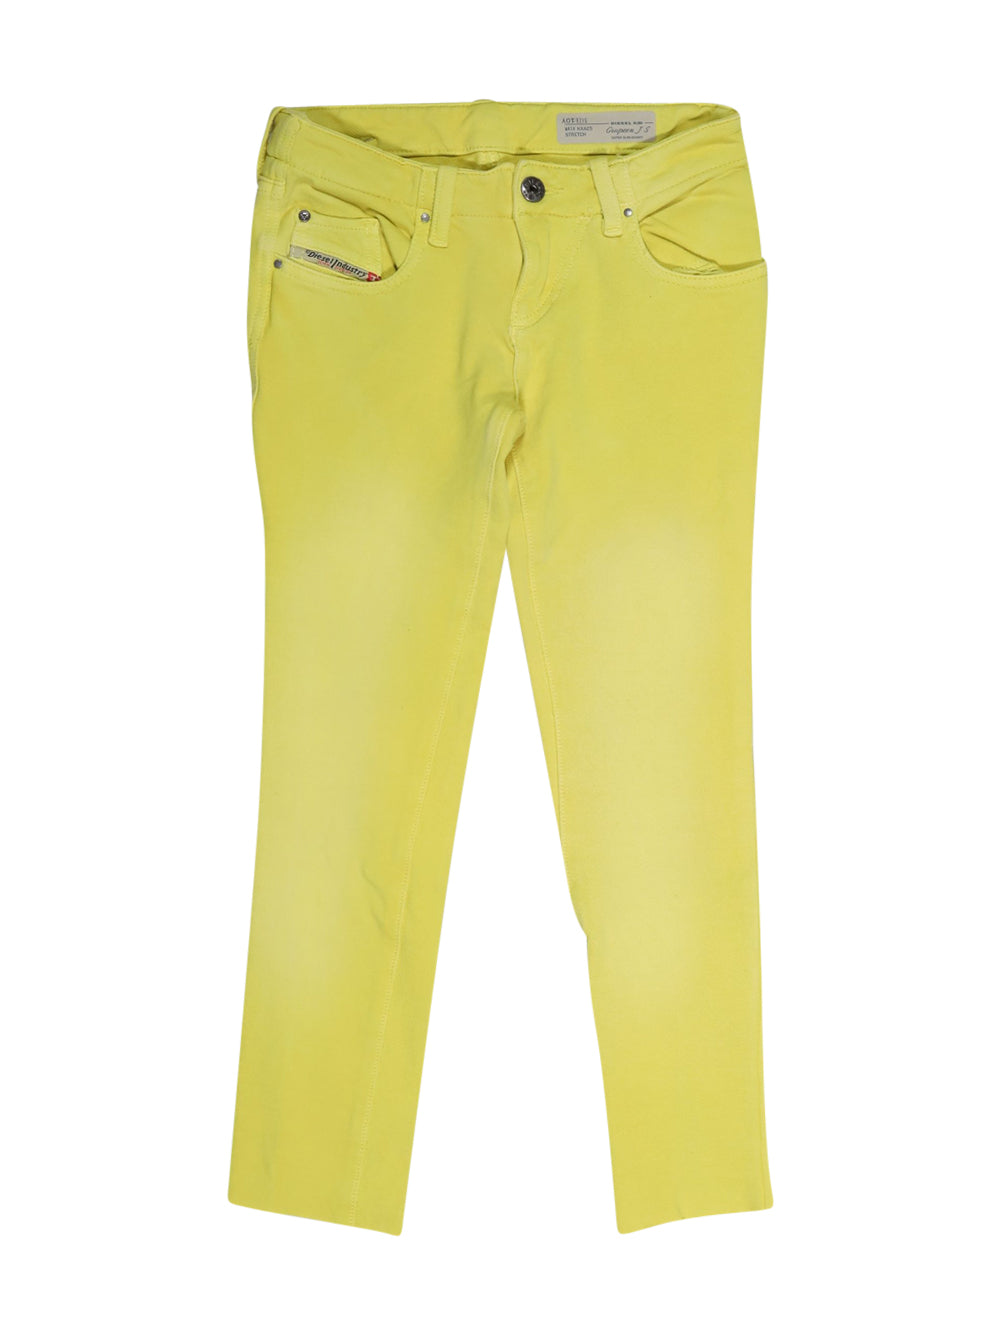 Front photo of Preloved Diesel Yellow Girl's trousers - size 9-10 yrs